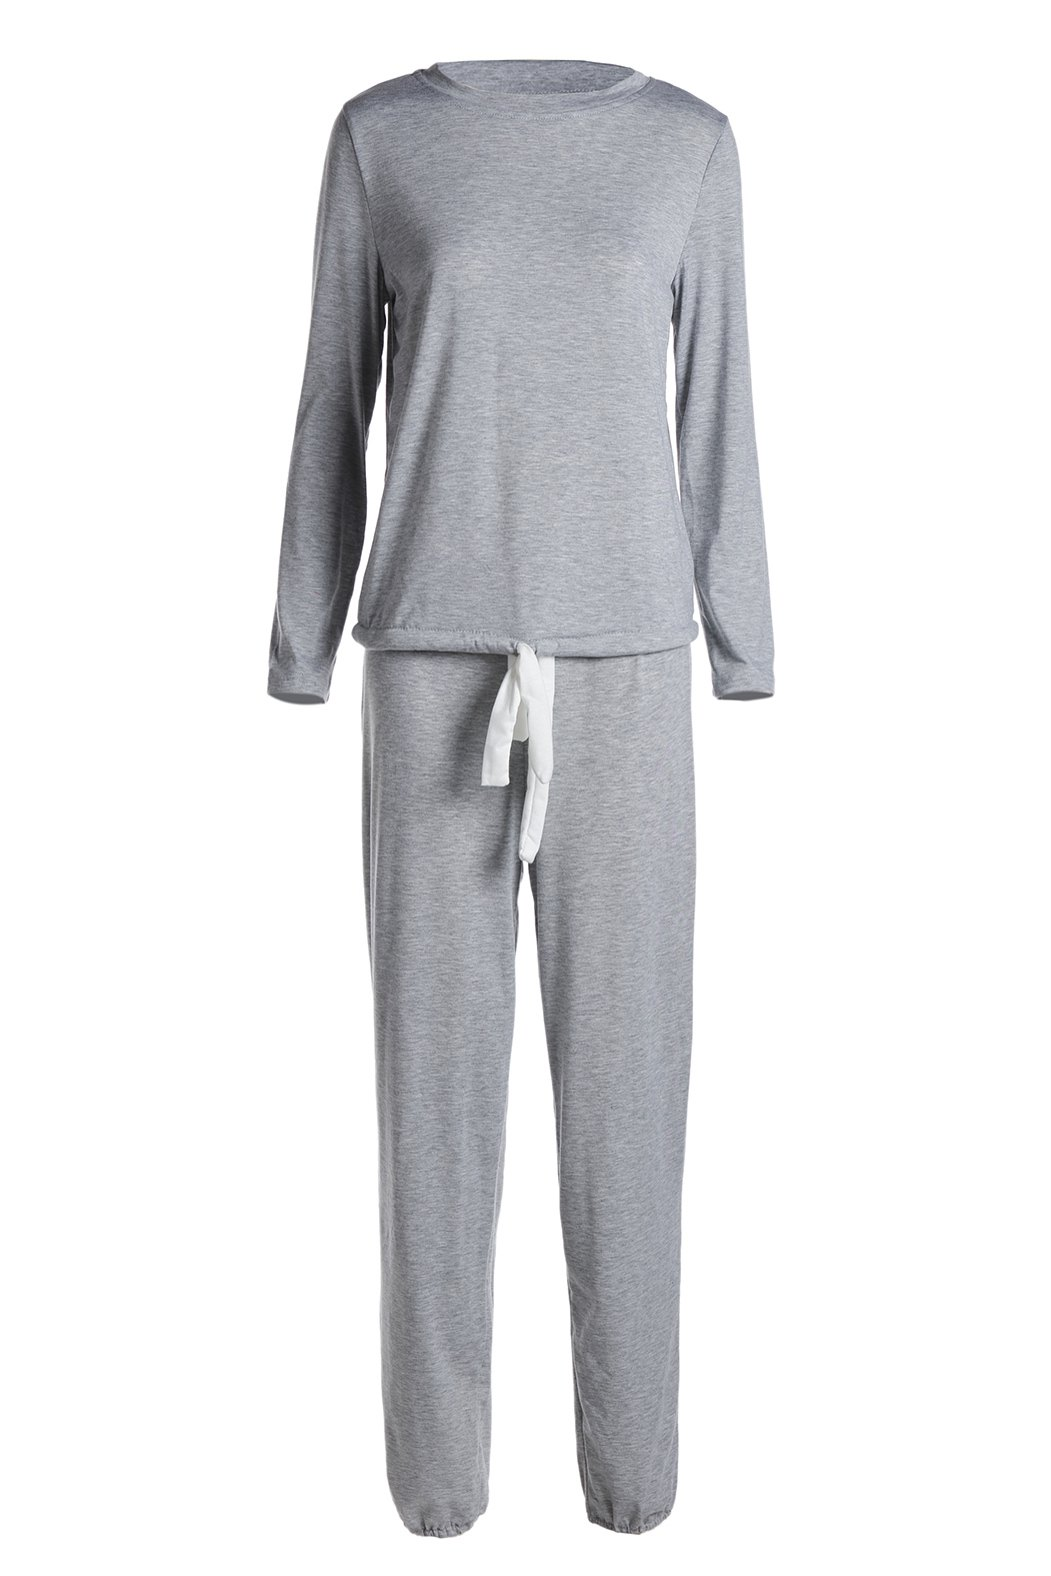 Casual Women's Scoop Neck Long Sleeve Top and Drawstring Pants Suit - GRAY XL